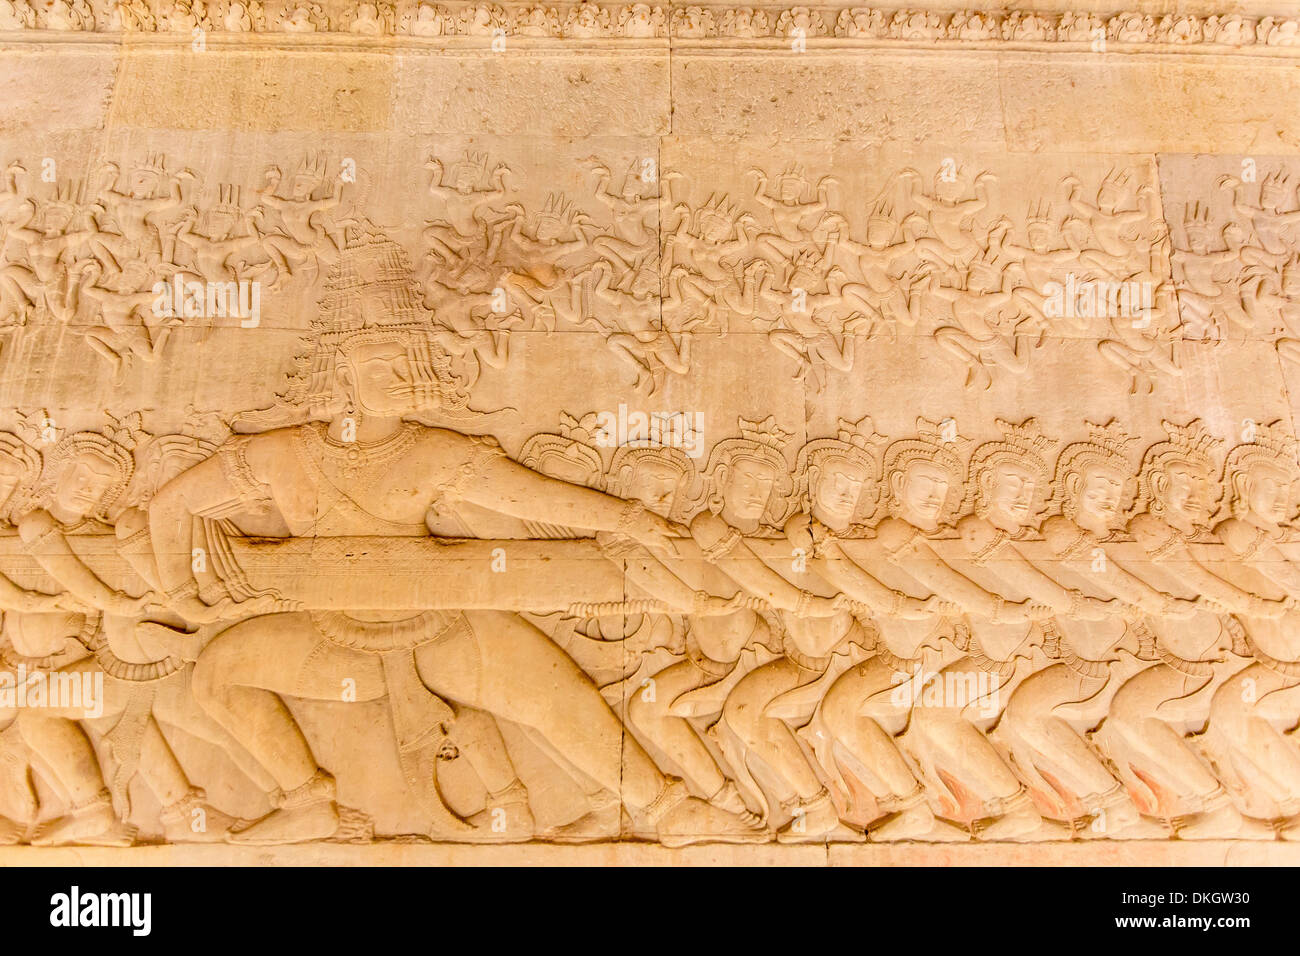 Bas-relief frieze at Angkor Wat, Angkor, UNESCO World Heritage Site, Siem Reap Province, Cambodia, Southeast Asia - Stock Image